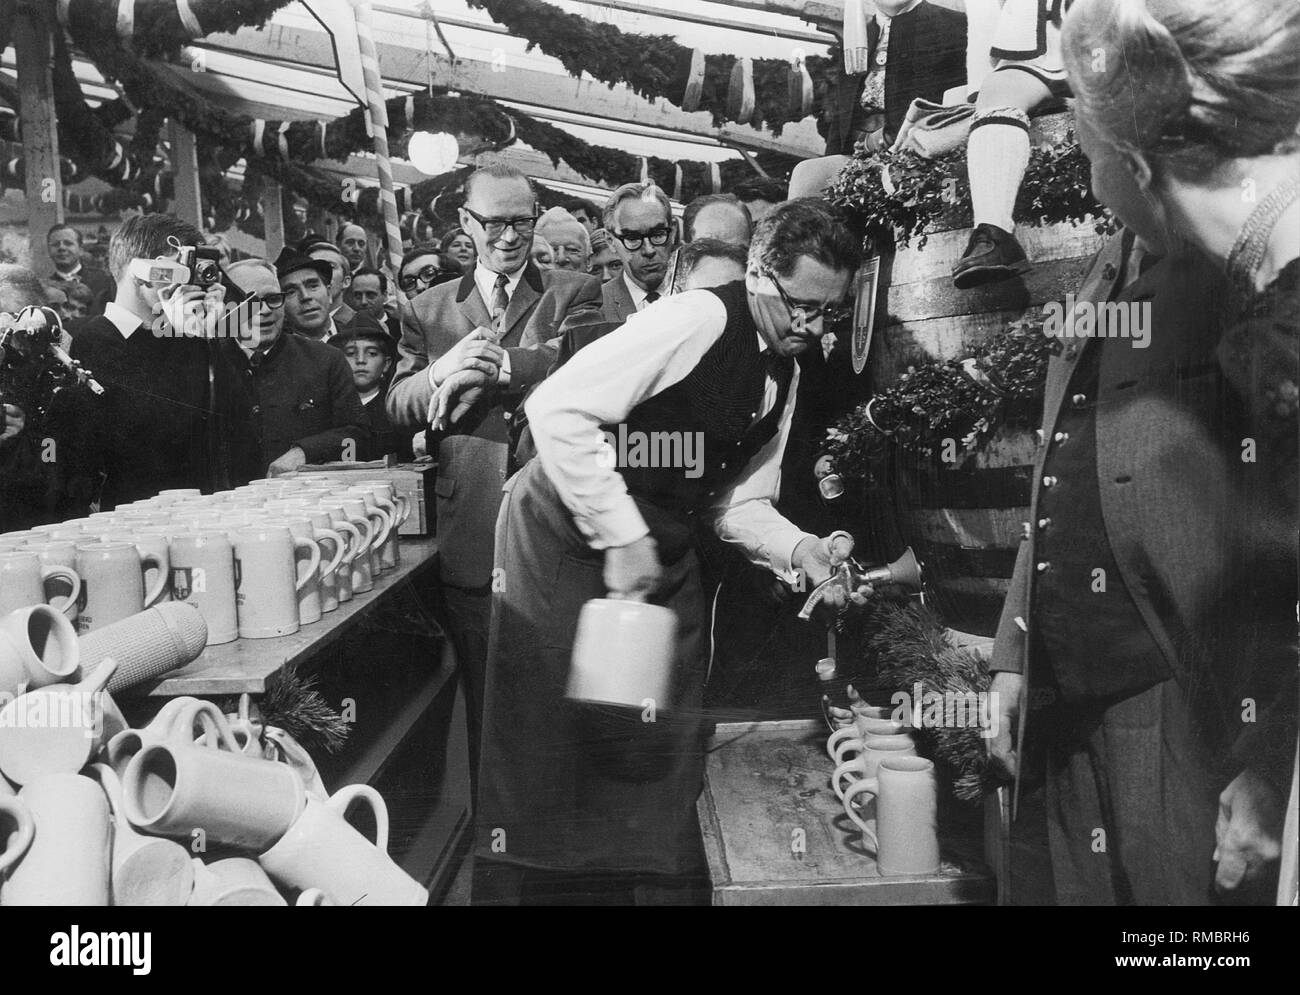 Tapping of the first beer keg at the Oktoberfest in Munich by Lord Mayor Hans-Jochen Vogel. - Stock Image